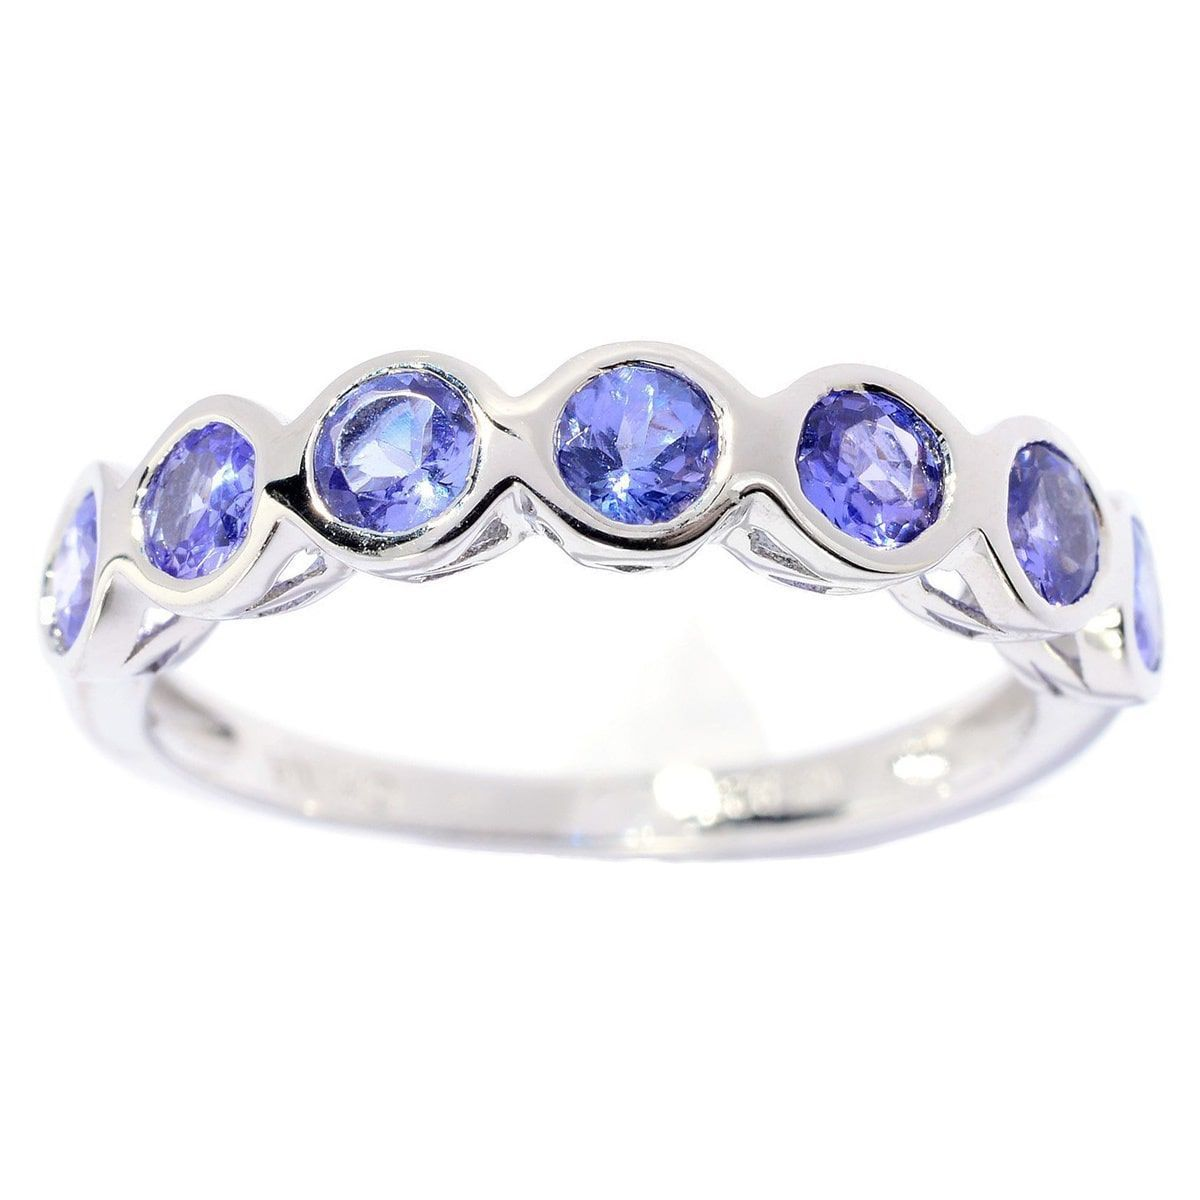 mv jared diamond ring cttw blue jaredstore jar gold en white zoom light hover zm stone to rings